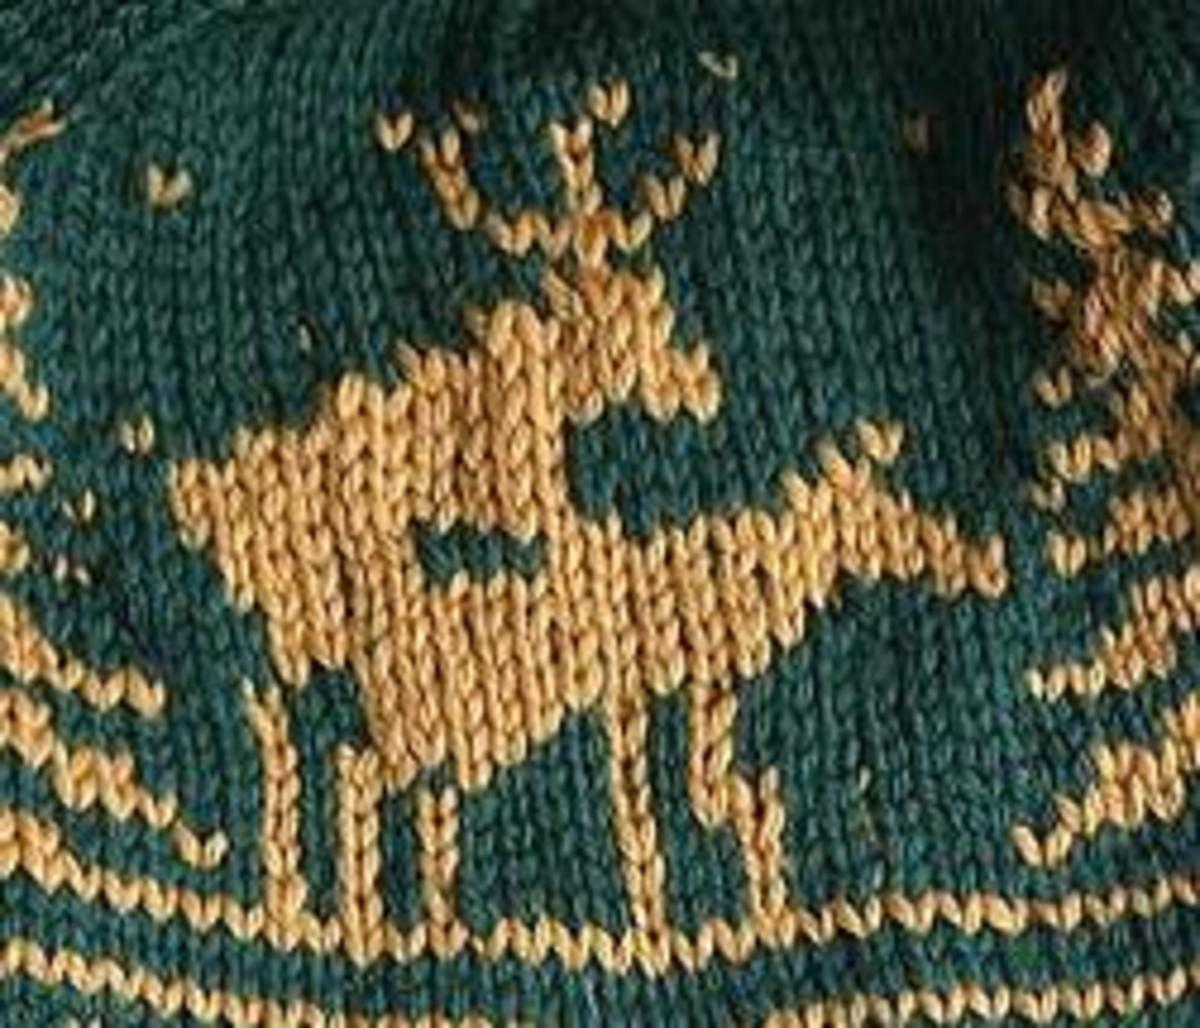 Our winner had this exact pattern on their sweater, except that both deer had horns...